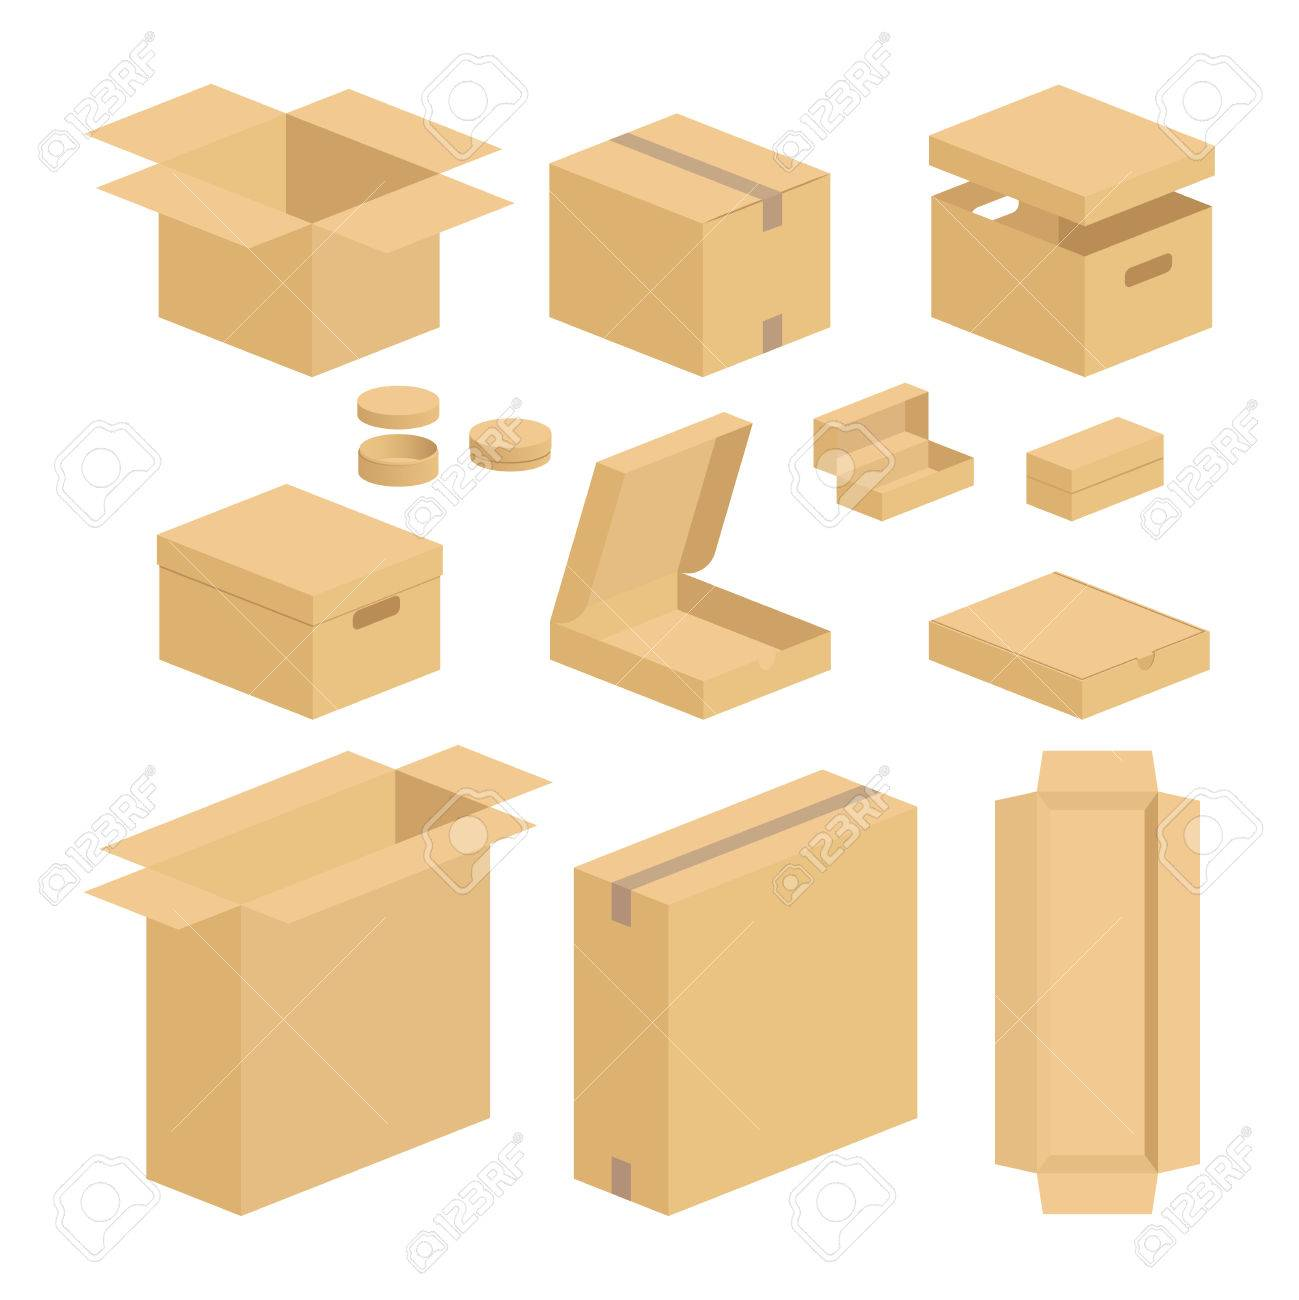 carton box pack set closed and opened brown carton packing boxes